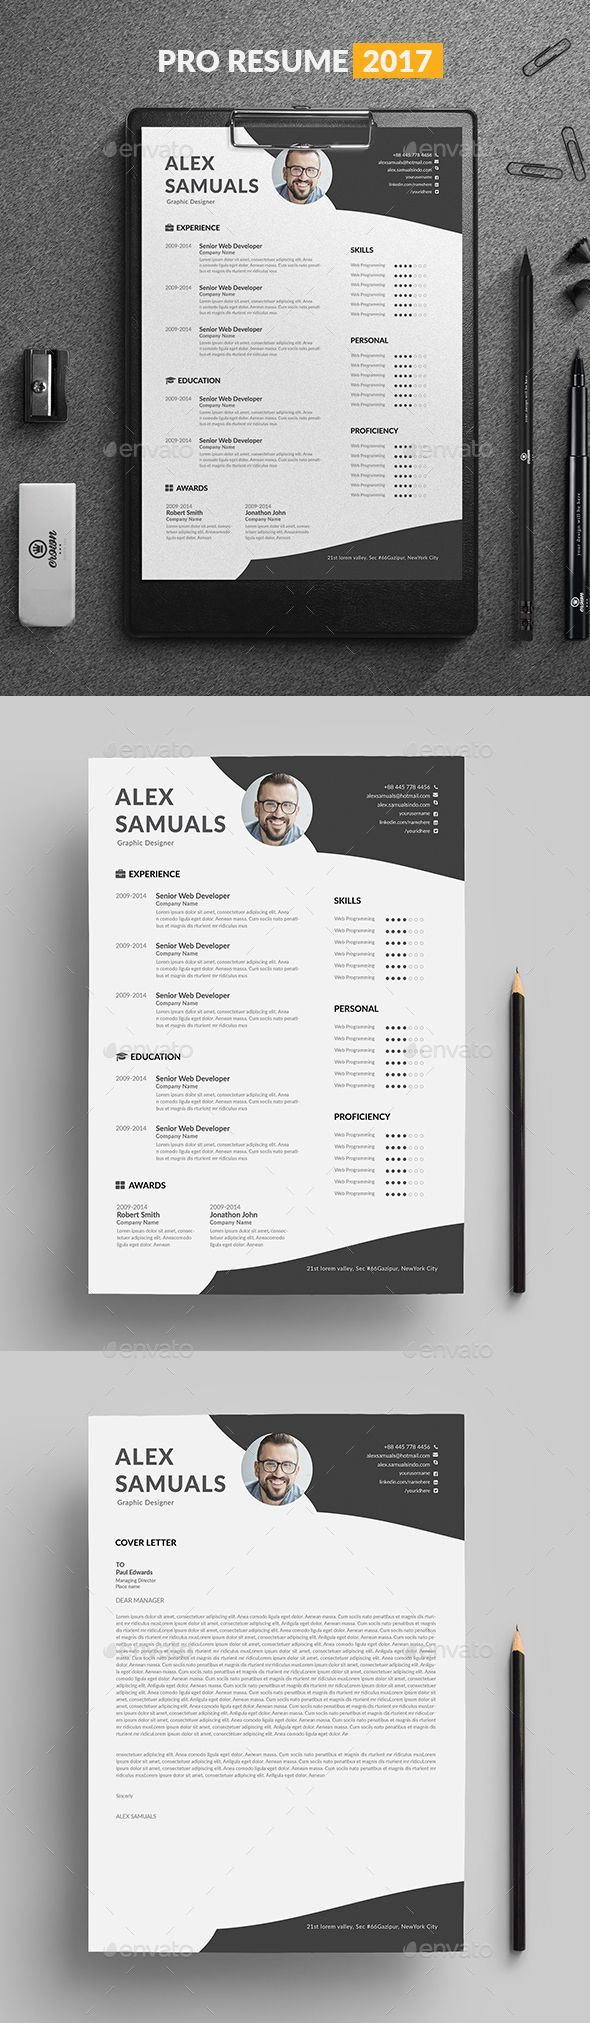 best cover letter design ideas pinterest resume template